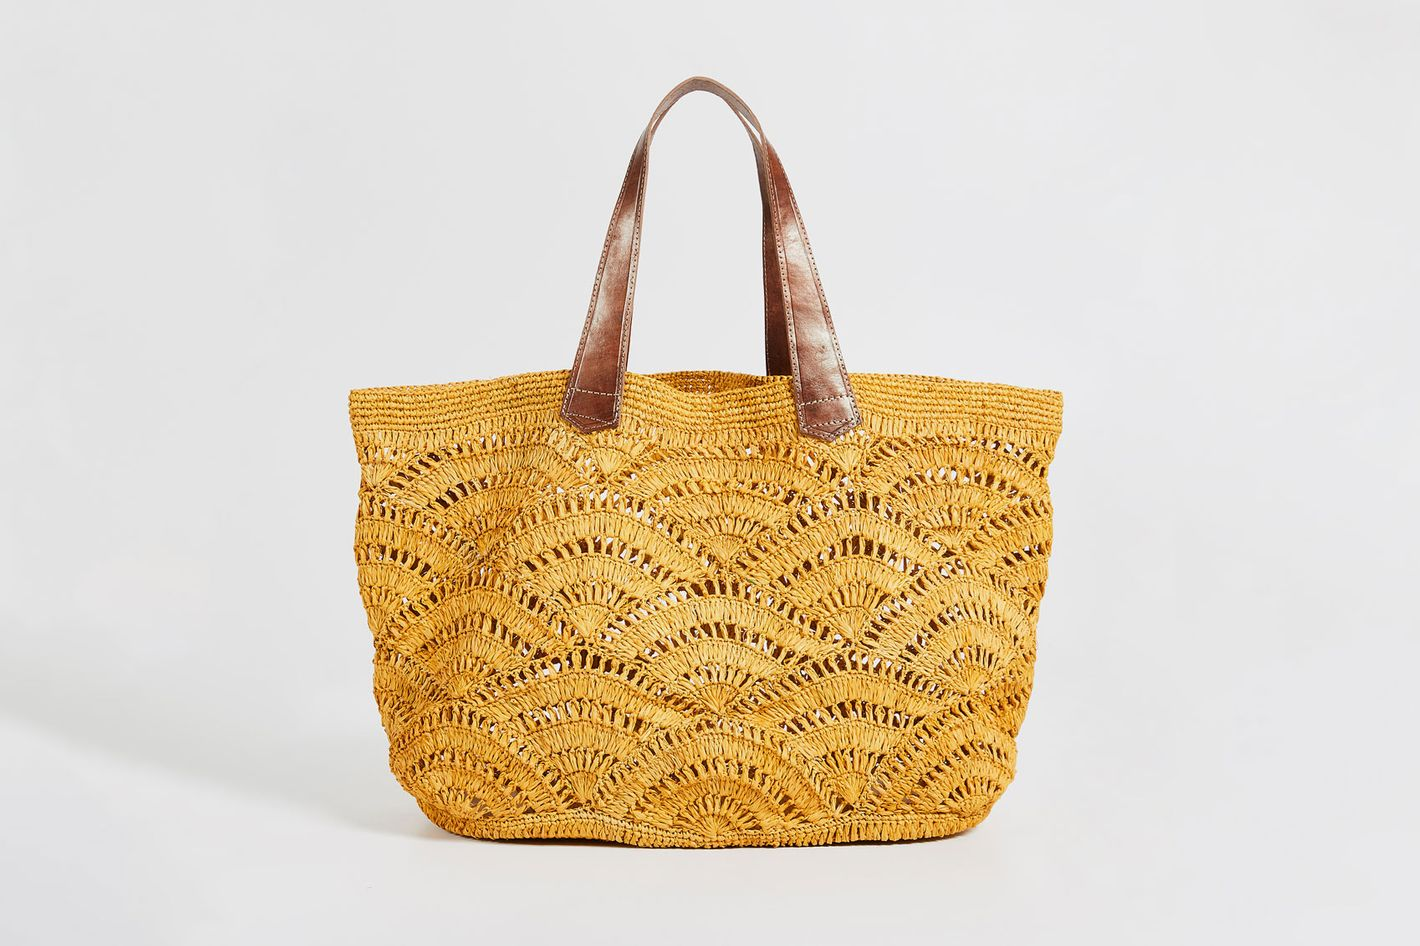 6f20504a4 Best straw beach bags. Mar Y Sol Tulum Tote